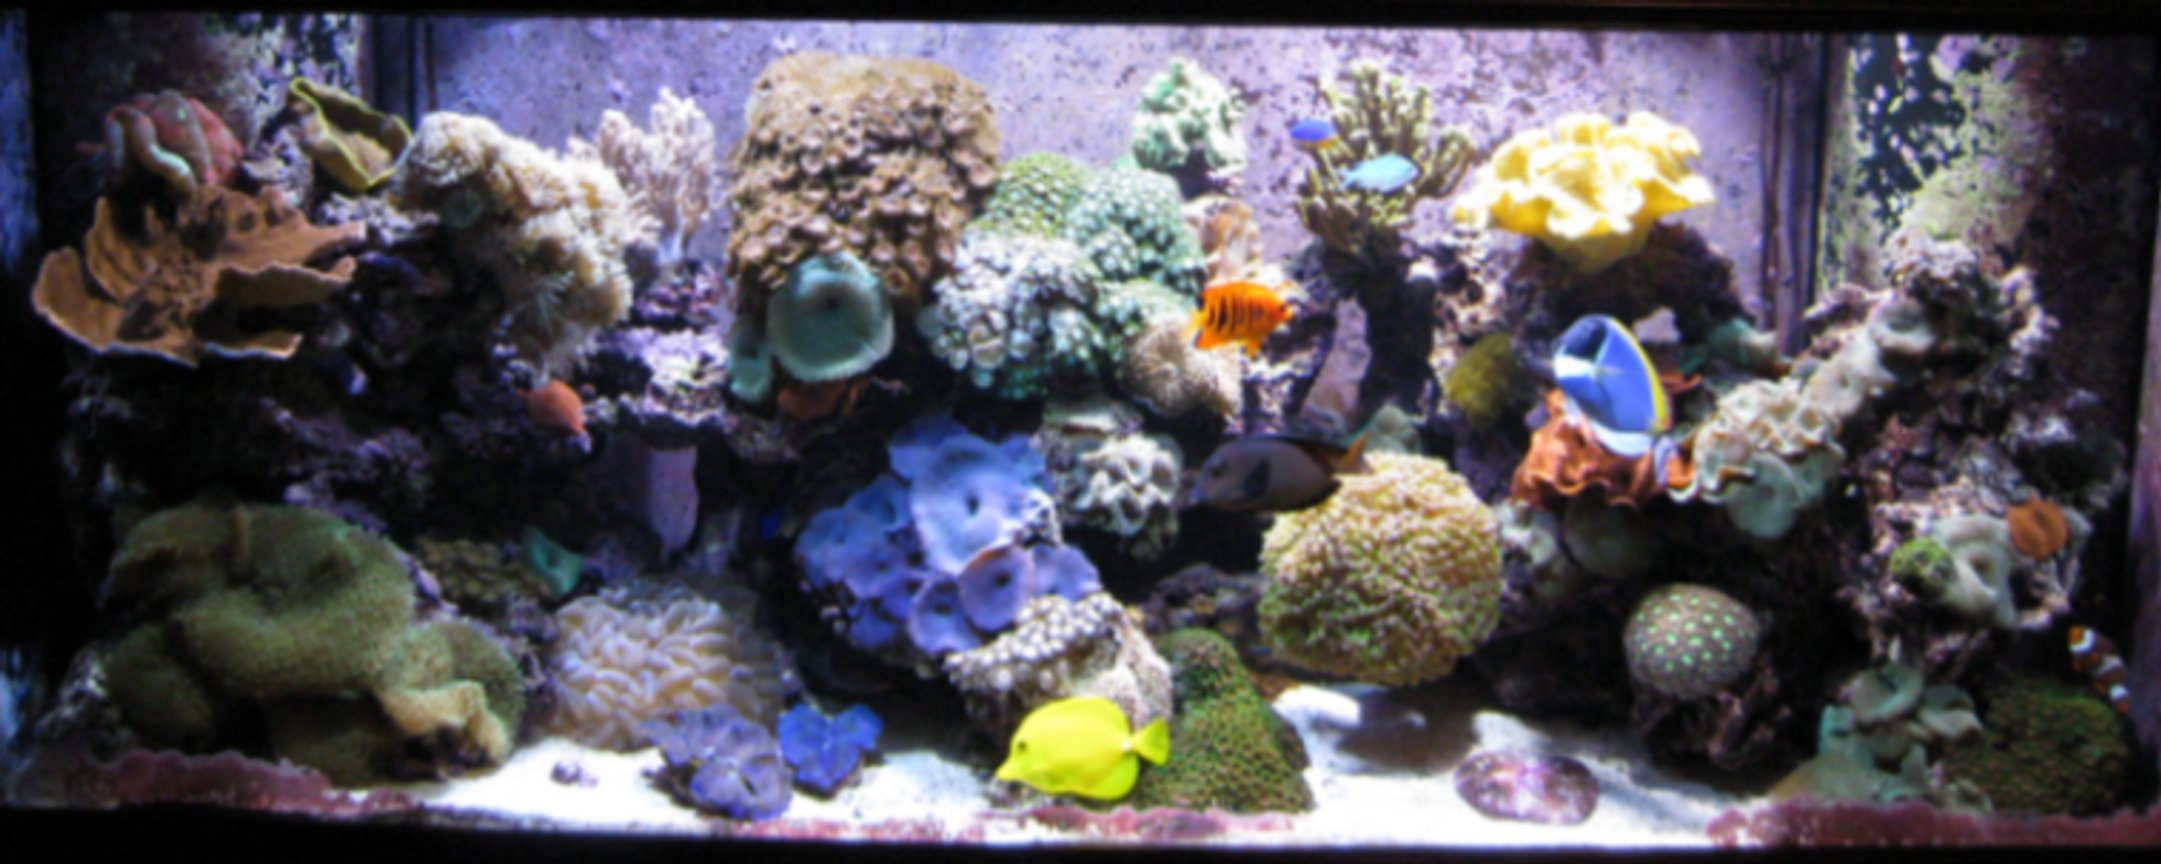 120 gallons reef tank (mostly live coral and fish) - 2 yrs old - 2010 March